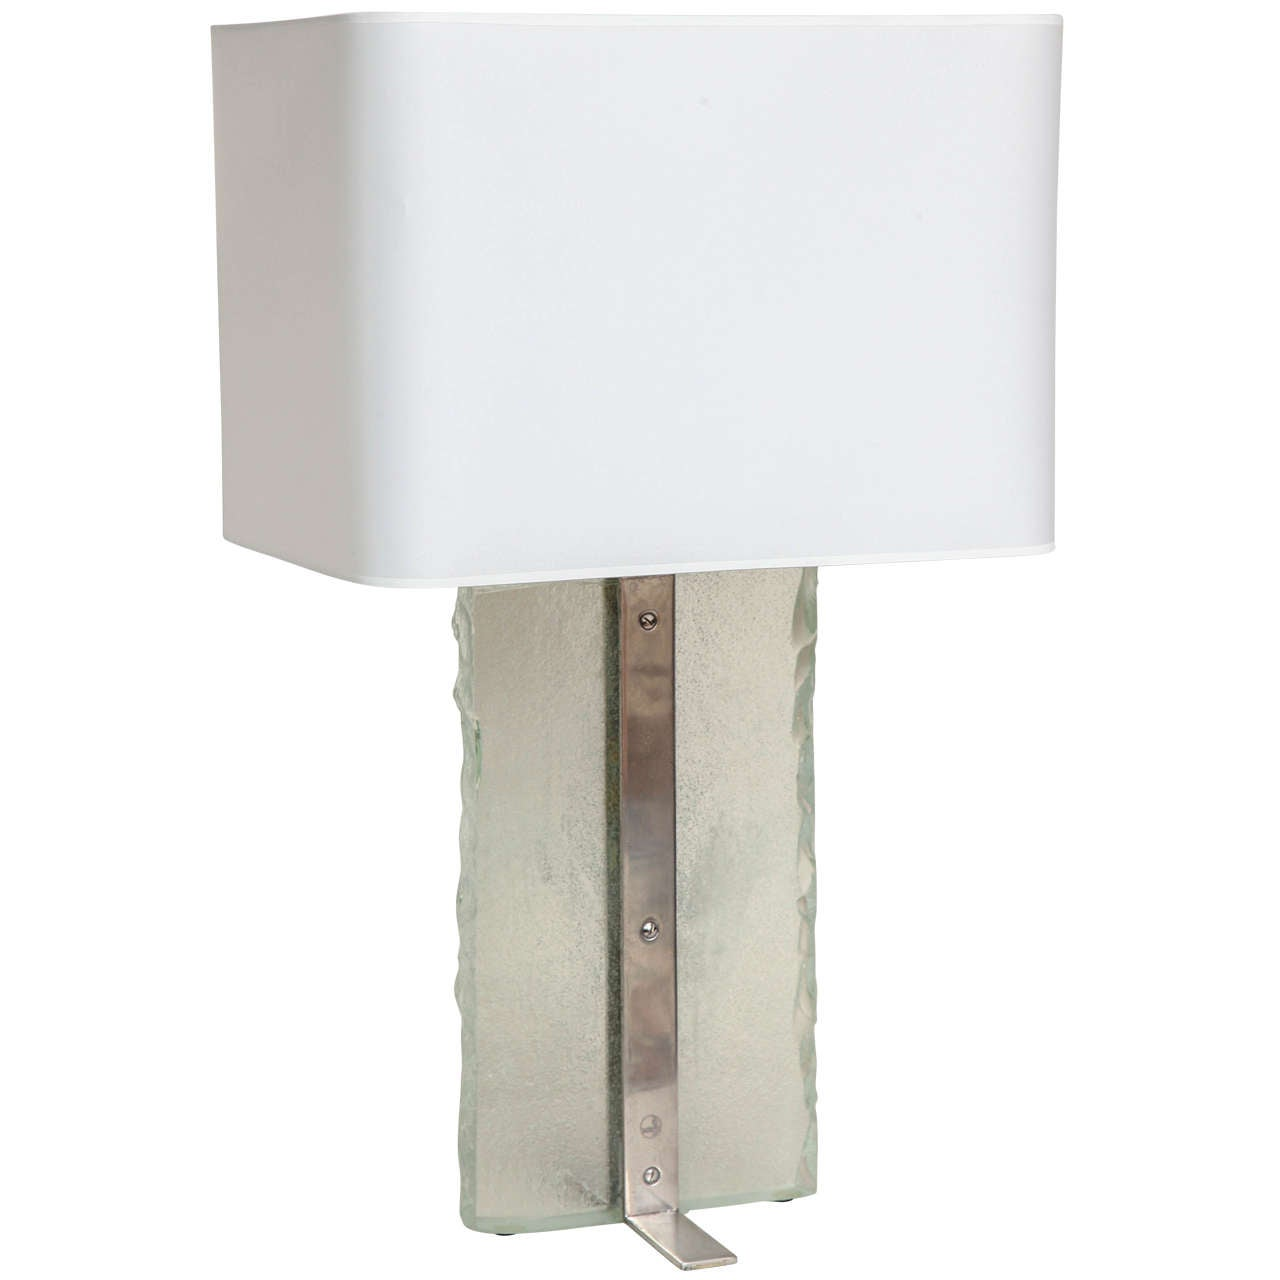 Boris Jean Lacroix French Art Deco Nickeled Brass and Glass Slab Table Lamp